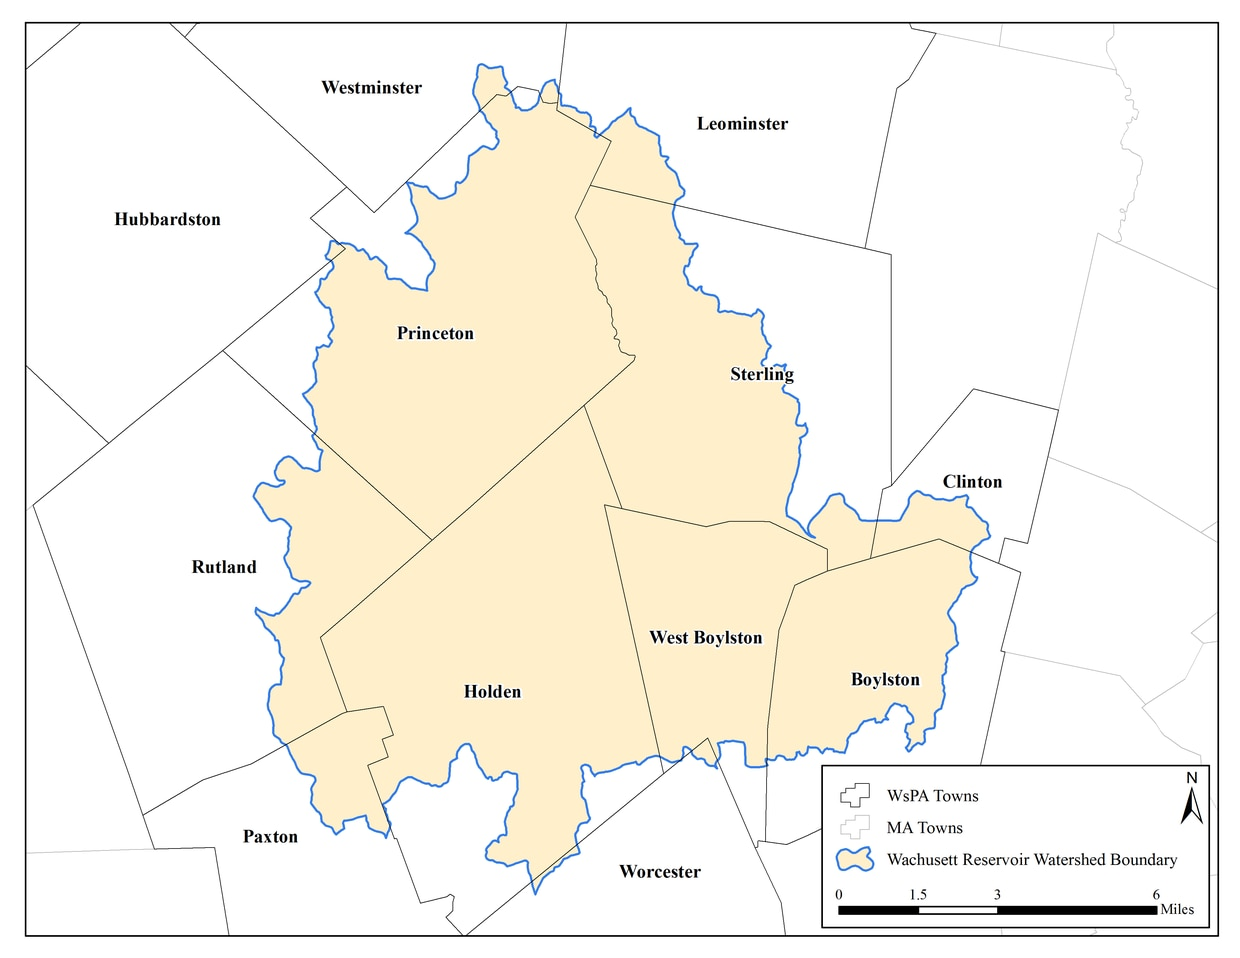 Towns affected by the Watershed Protection Act in the Wachusett Reservoir Watershed